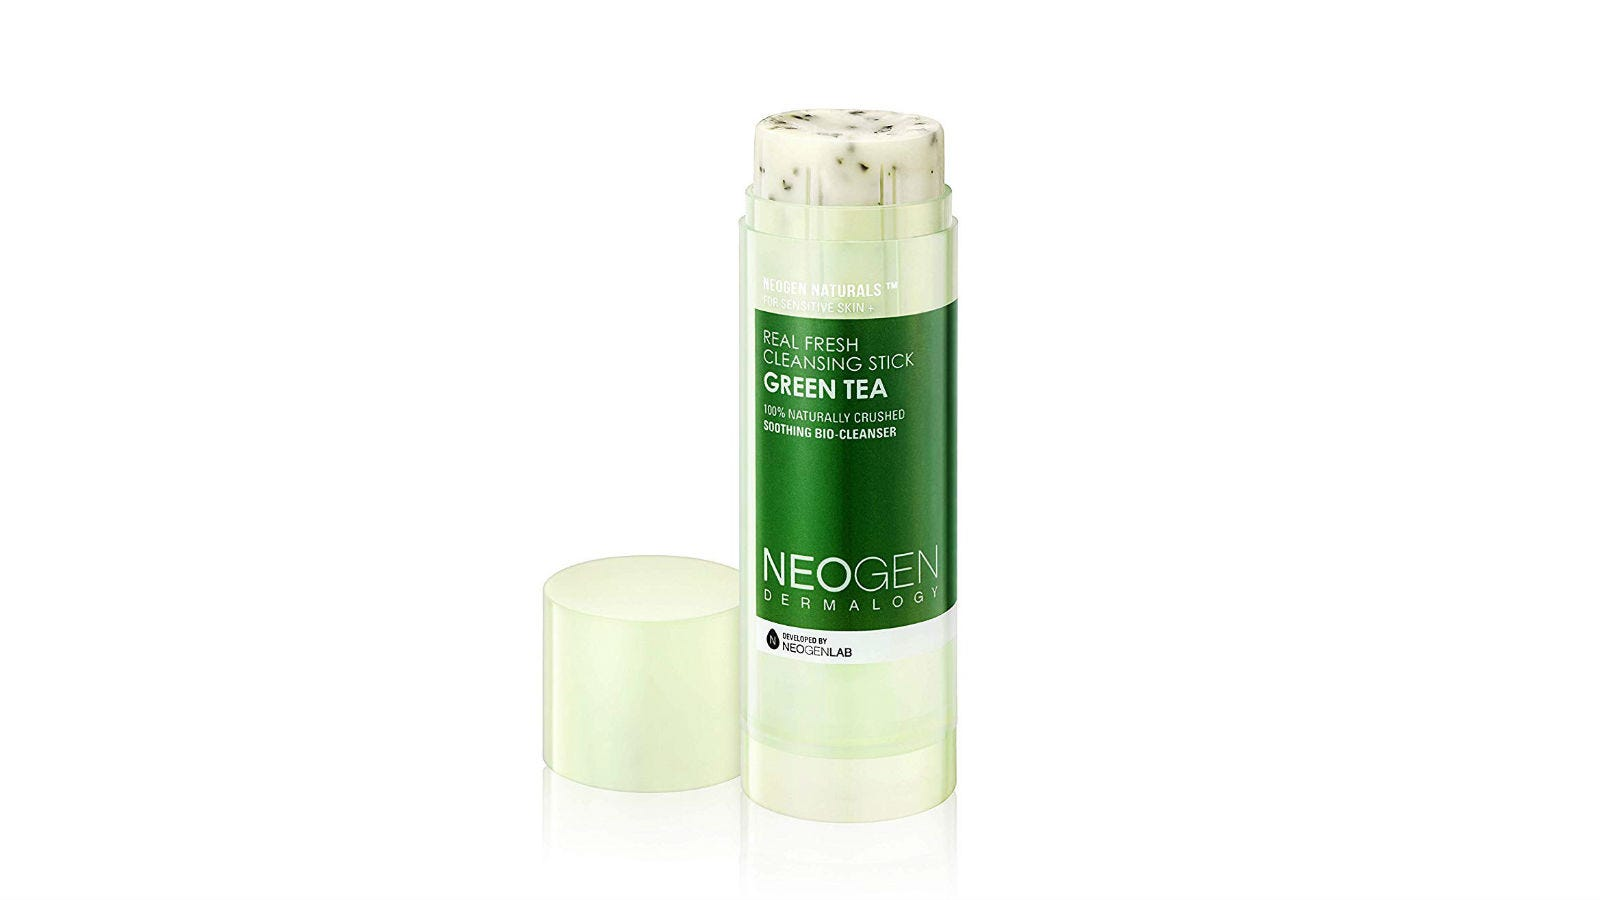 A bottle of Neogen Dermalogy Real Fresh Cleansing Stick in Green Tea with the cap off.